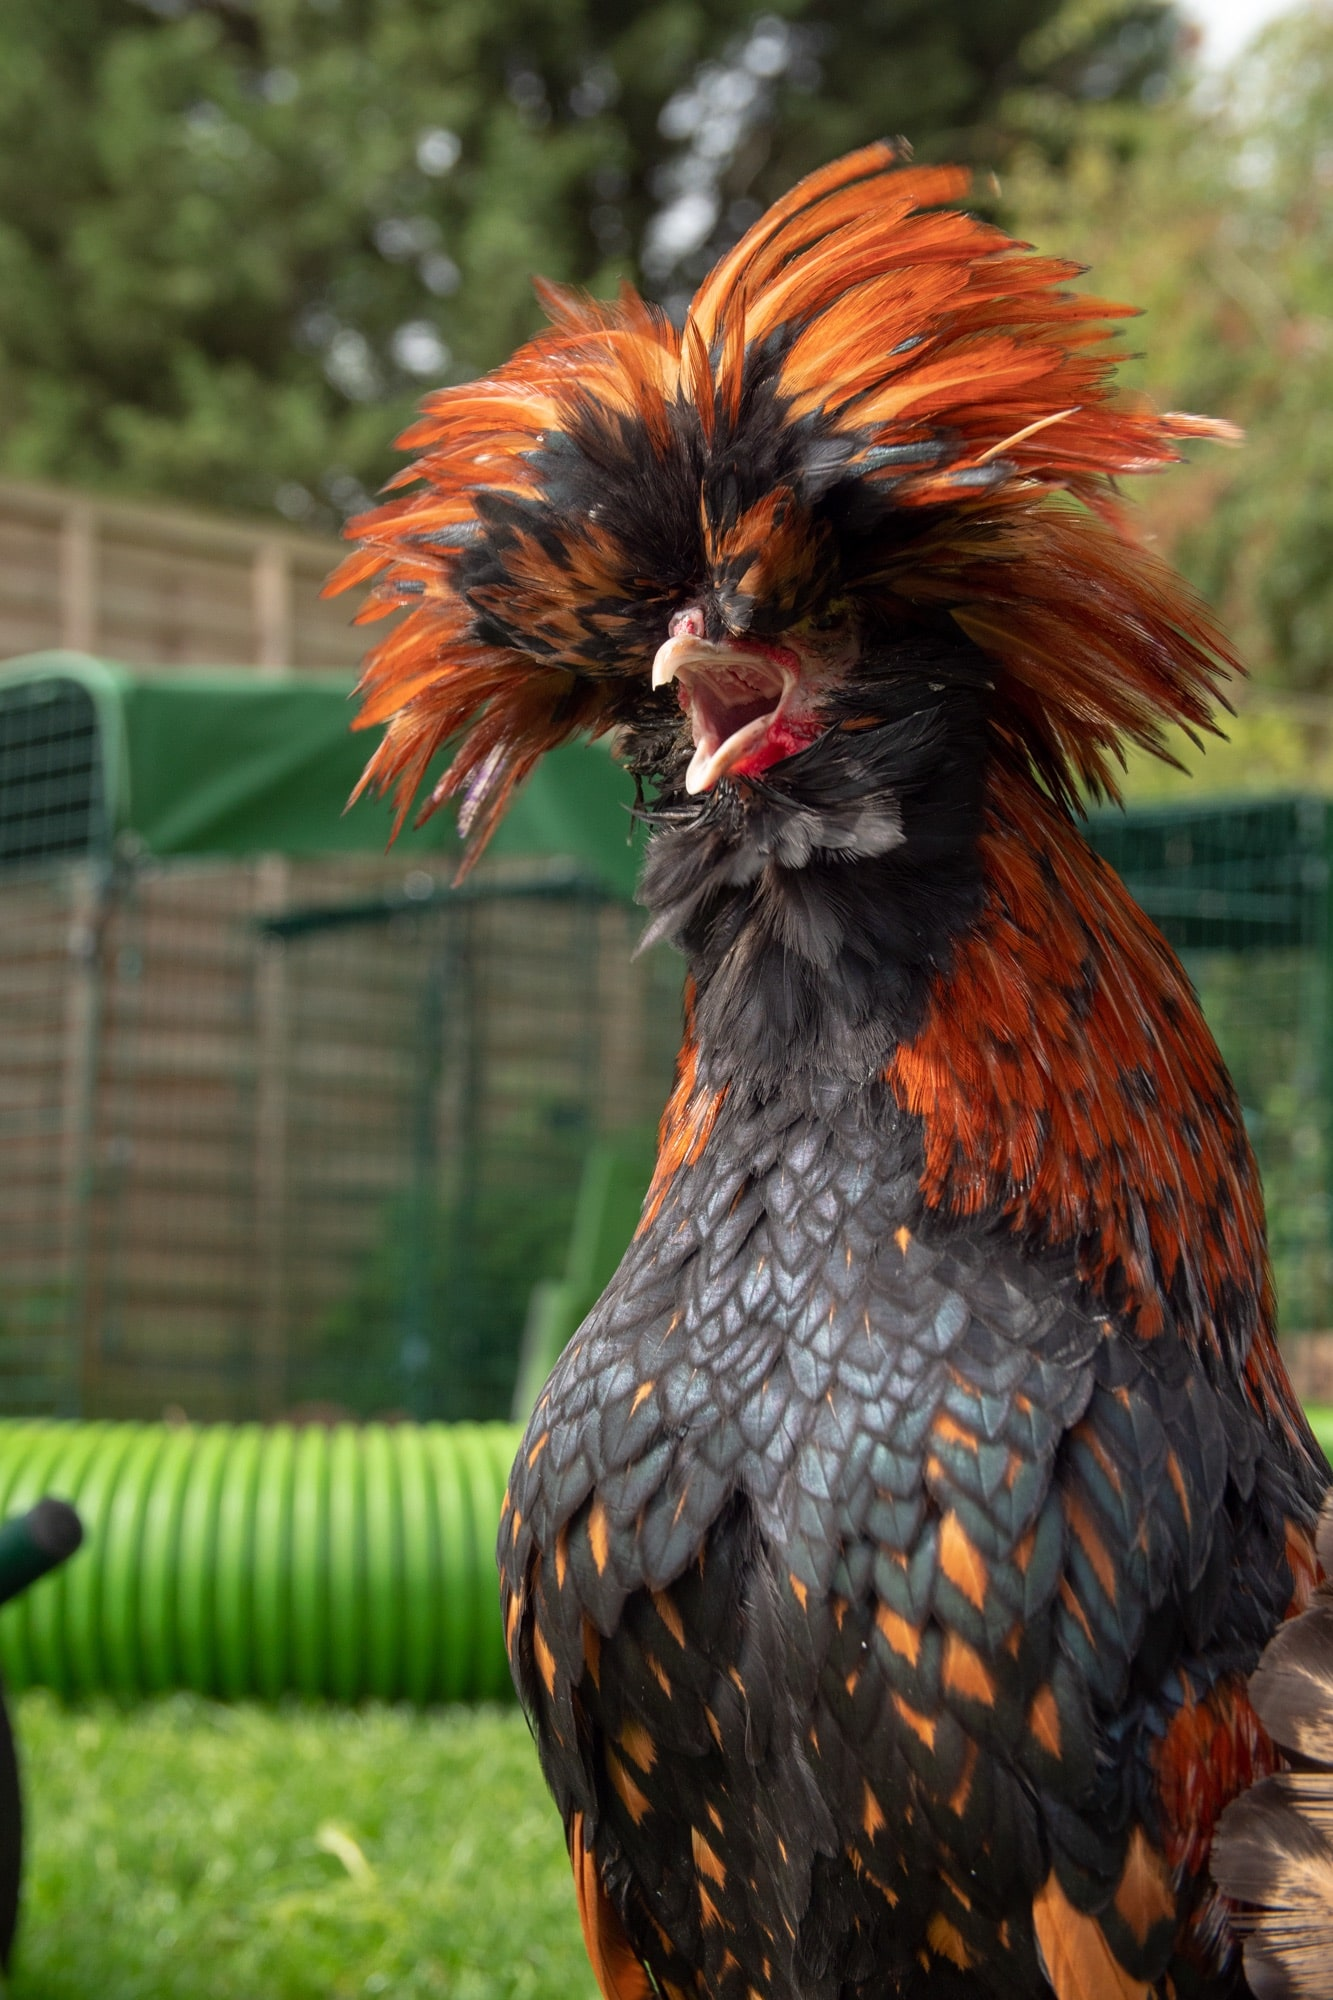 A long haired black and orange chicken with its beak wide open